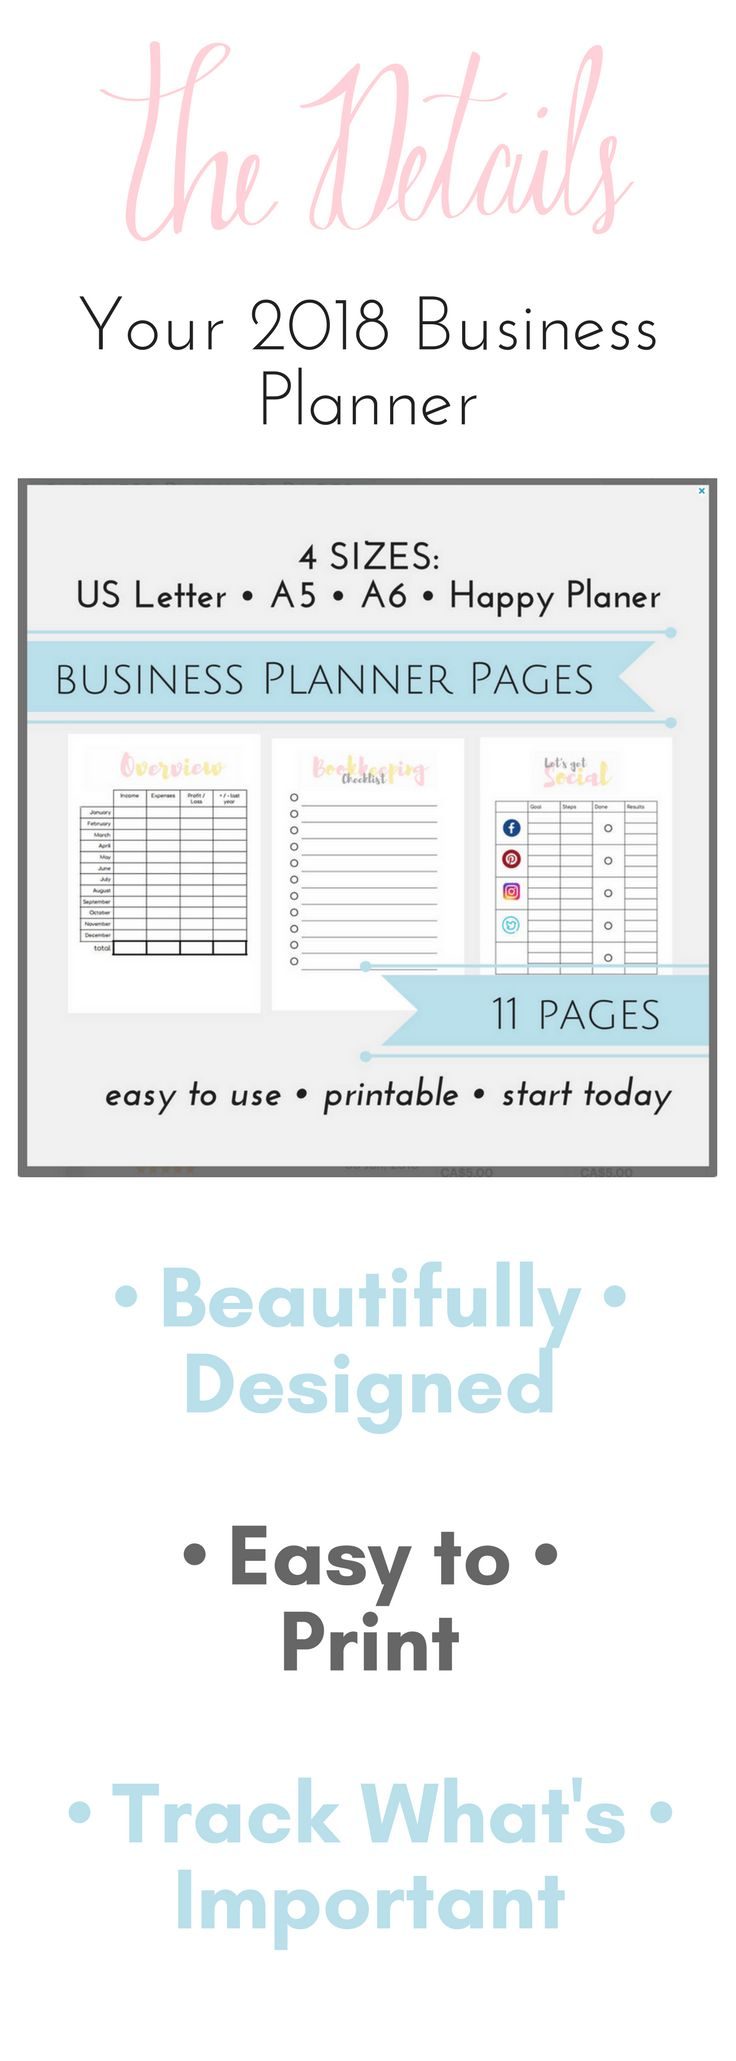 Happy Planner Business Small Business Planner Happy Planner Social Media Tracker Template Business Planner Budget